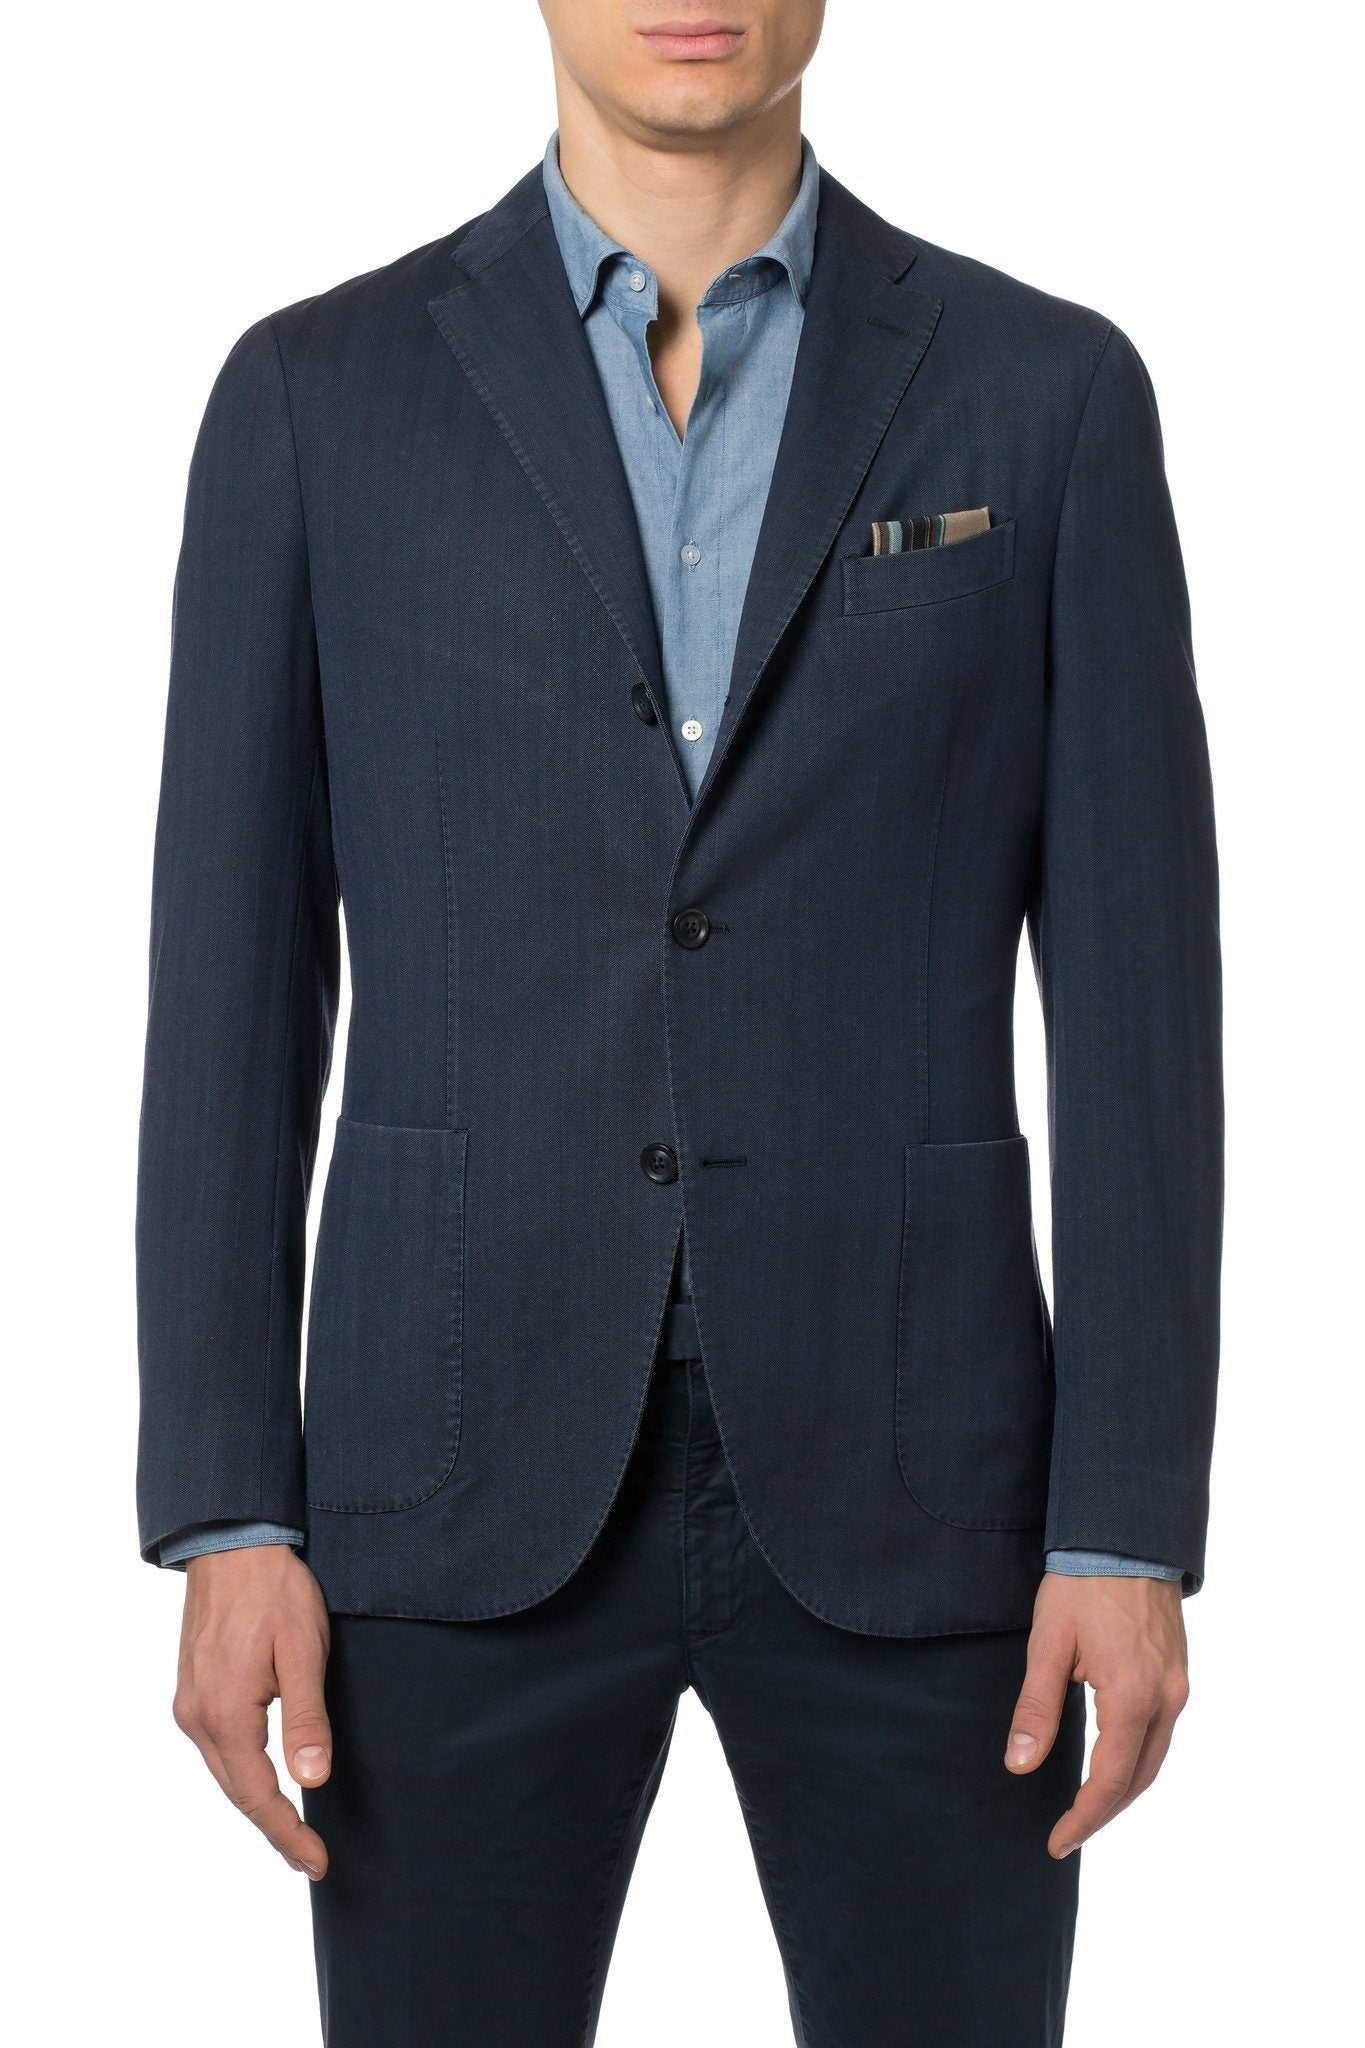 BOGLIOLI Beyond the season K-Jacket ( SHIRT JACKET ),SPORT COATS,Boglioli, | GentRow.com